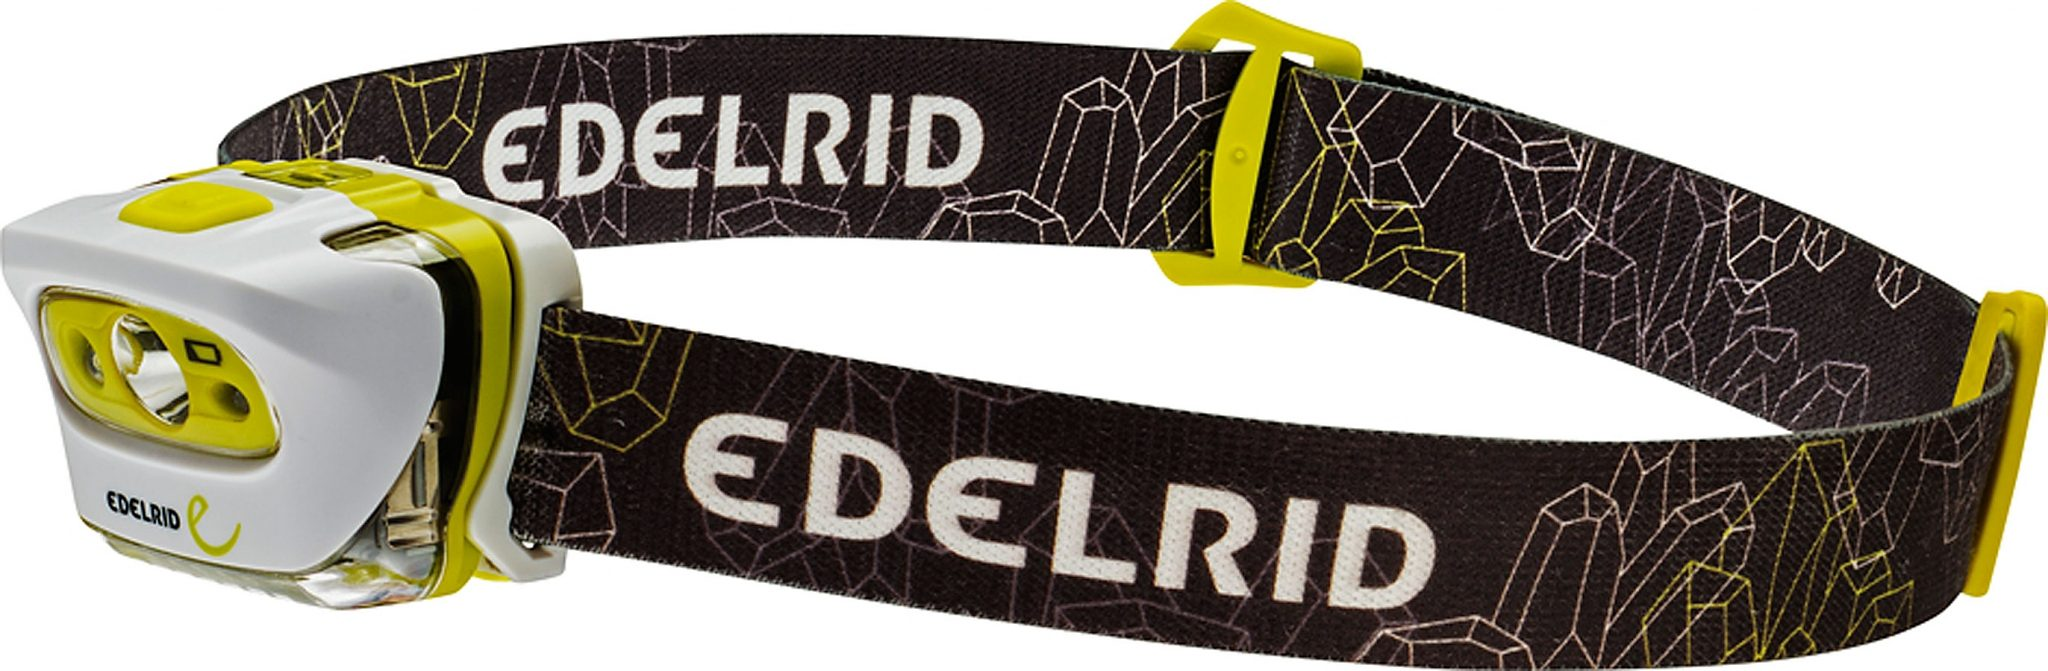 Edelrid Camping-Beleuchtung »Cometalite Headlamp snow-oasis«